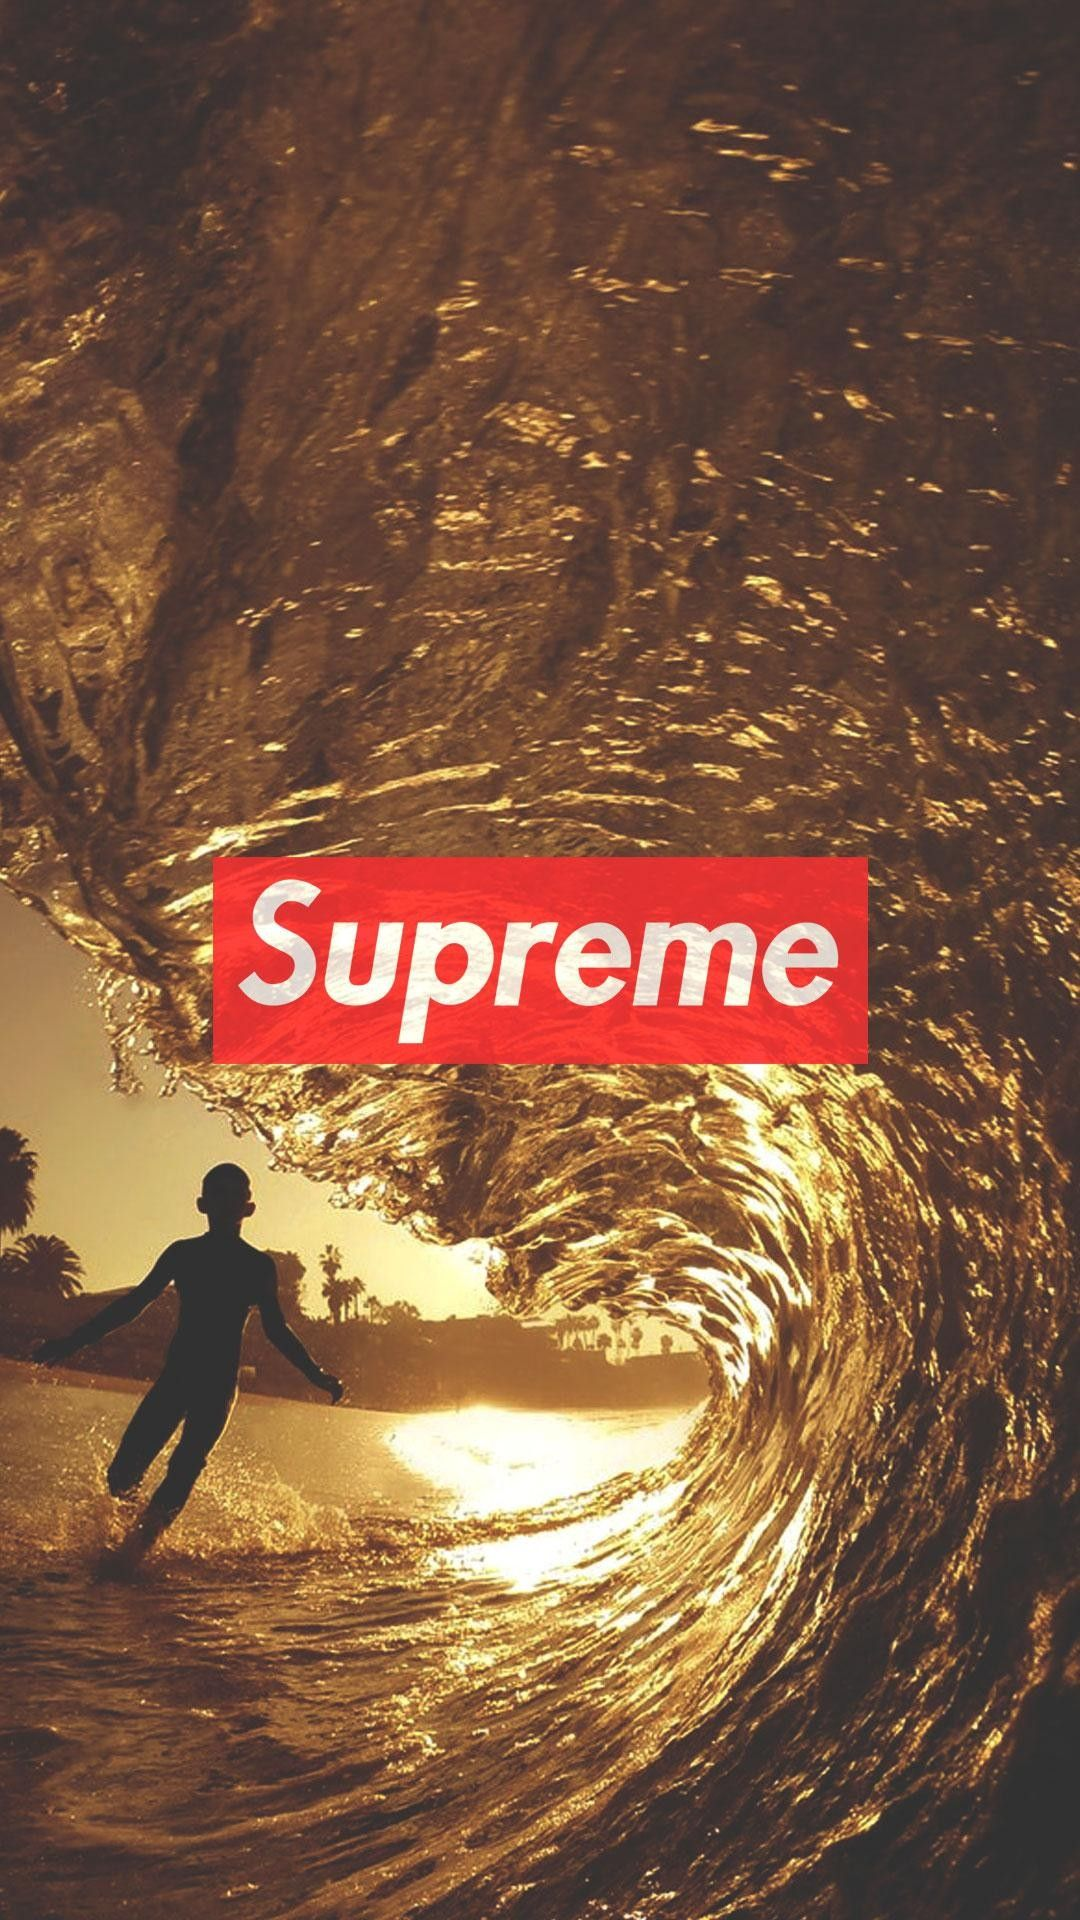 Pin By Melinda Basir On Hypebeast Wallpapers Supreme Wallpaper Supreme Iphone Wallpaper Supreme Art